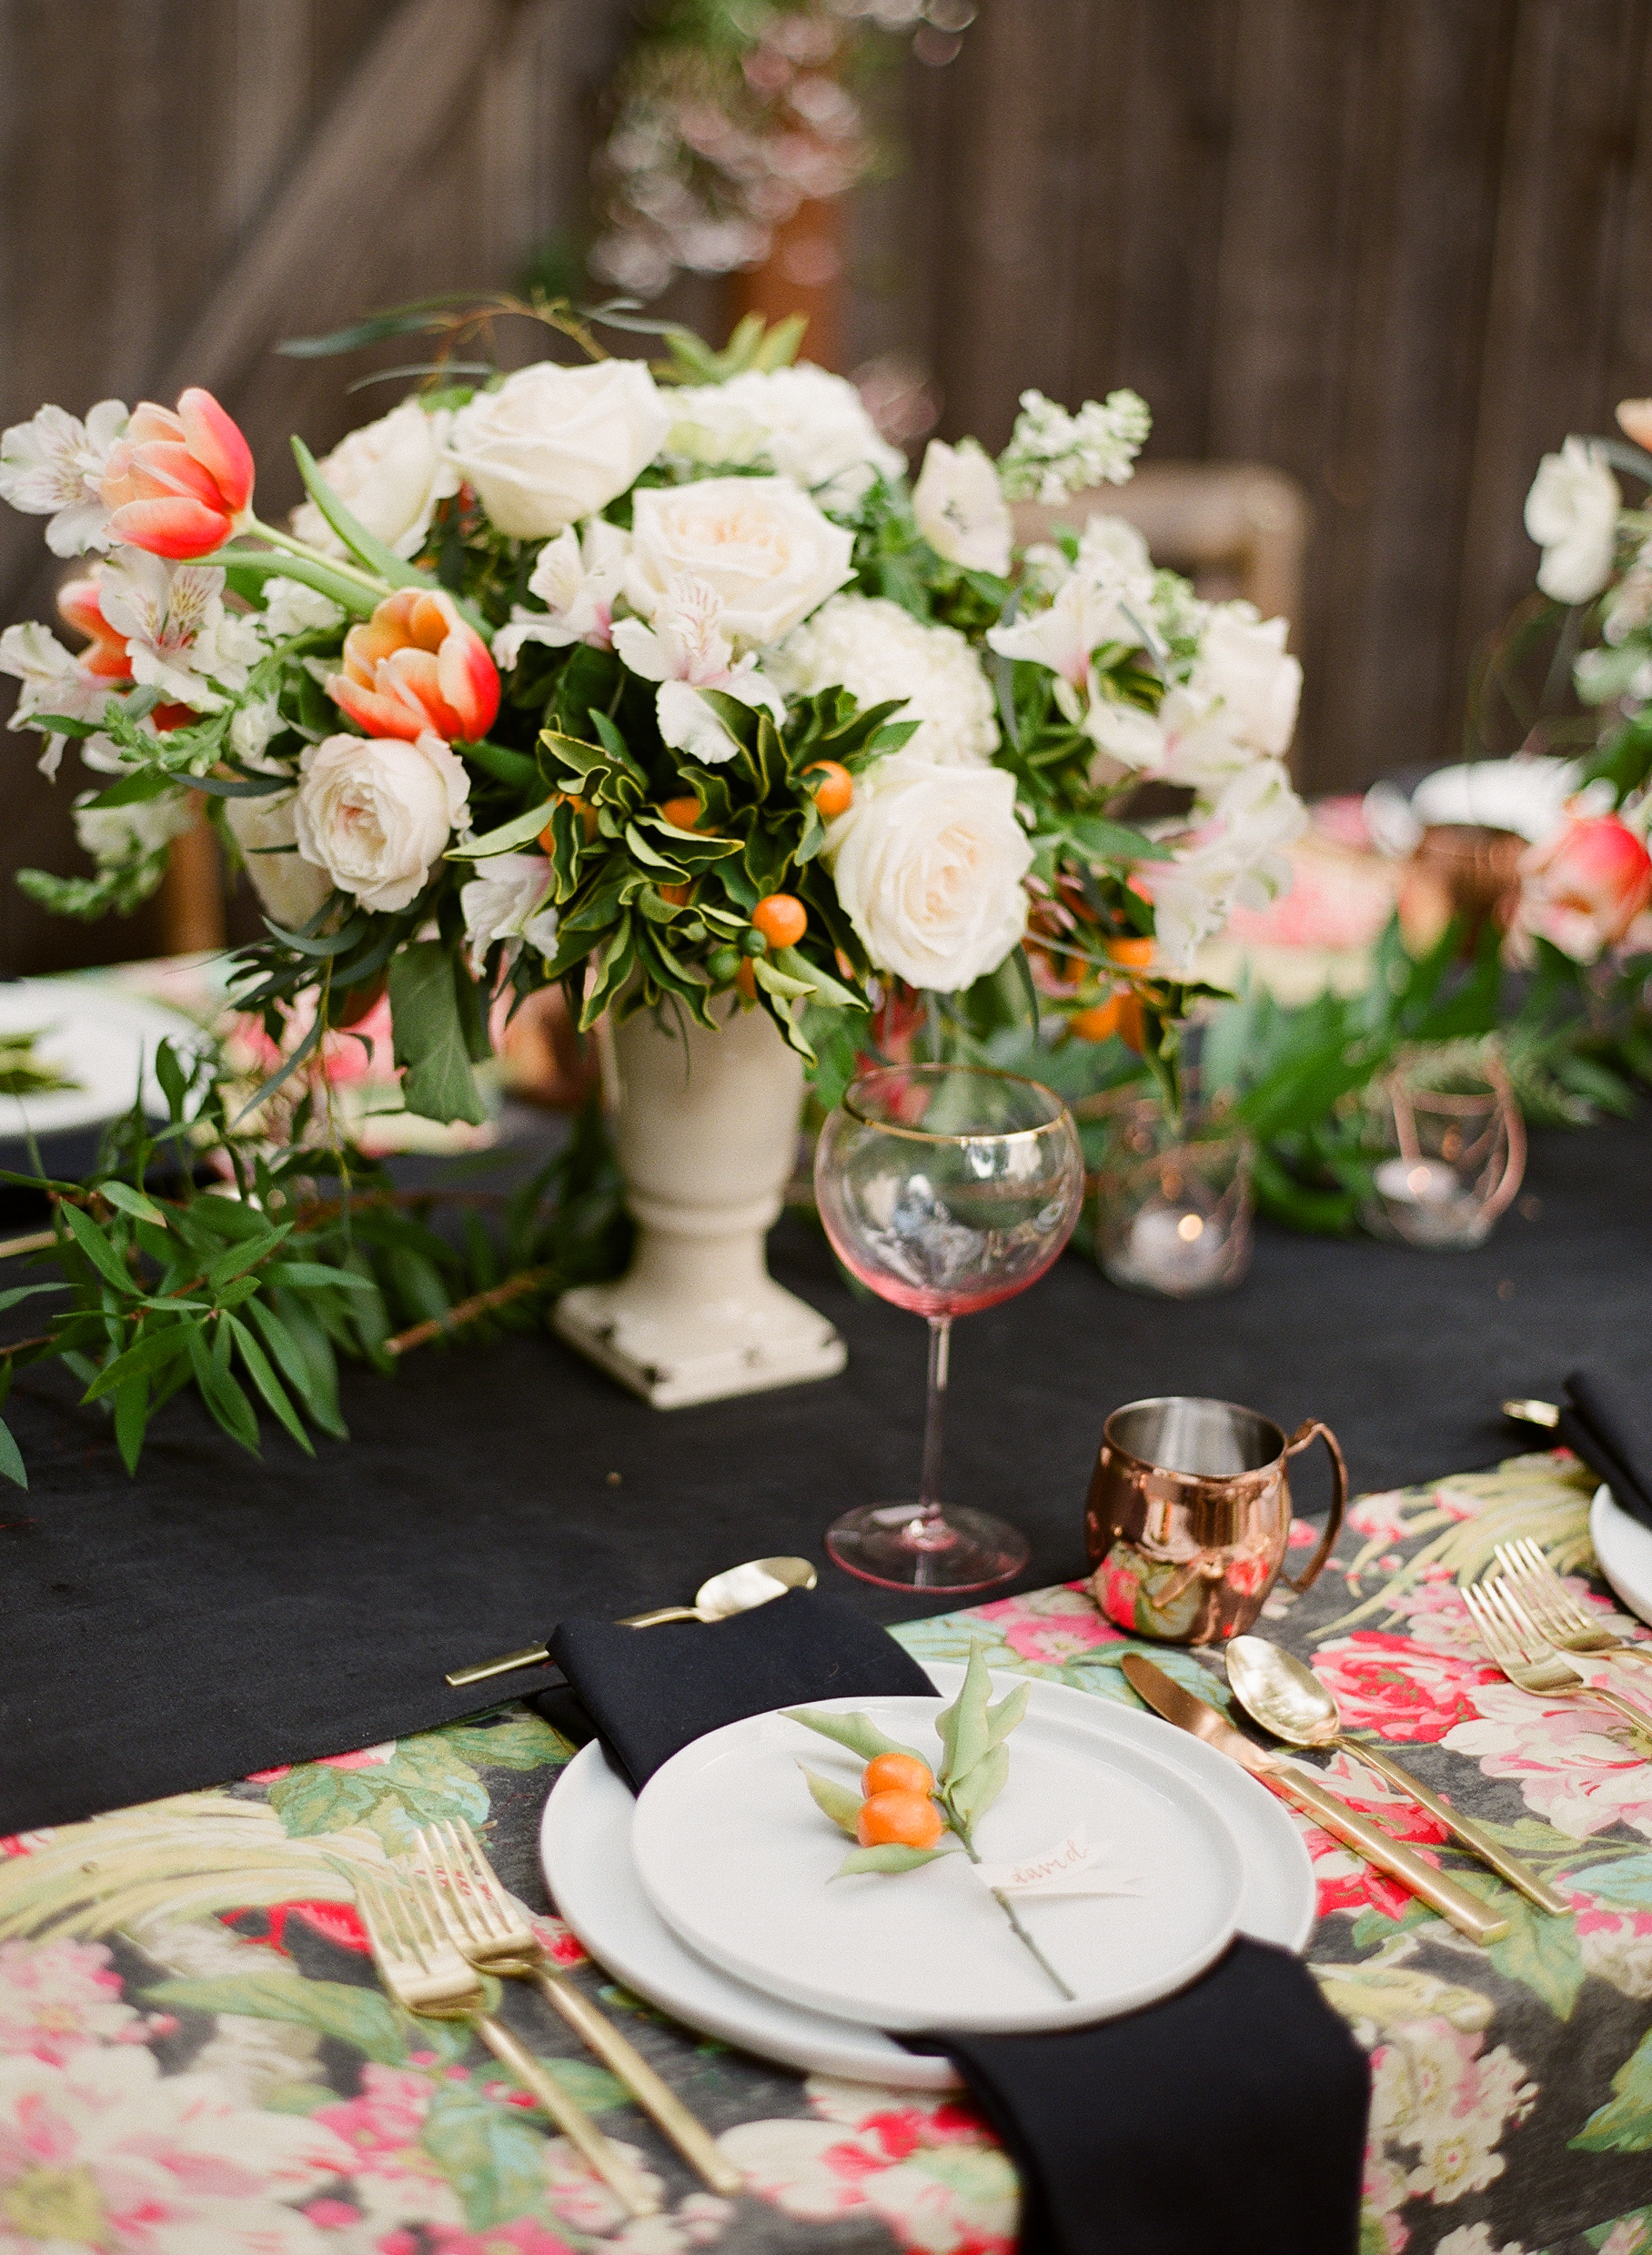 beautifully decorated table for outdoor entertaining